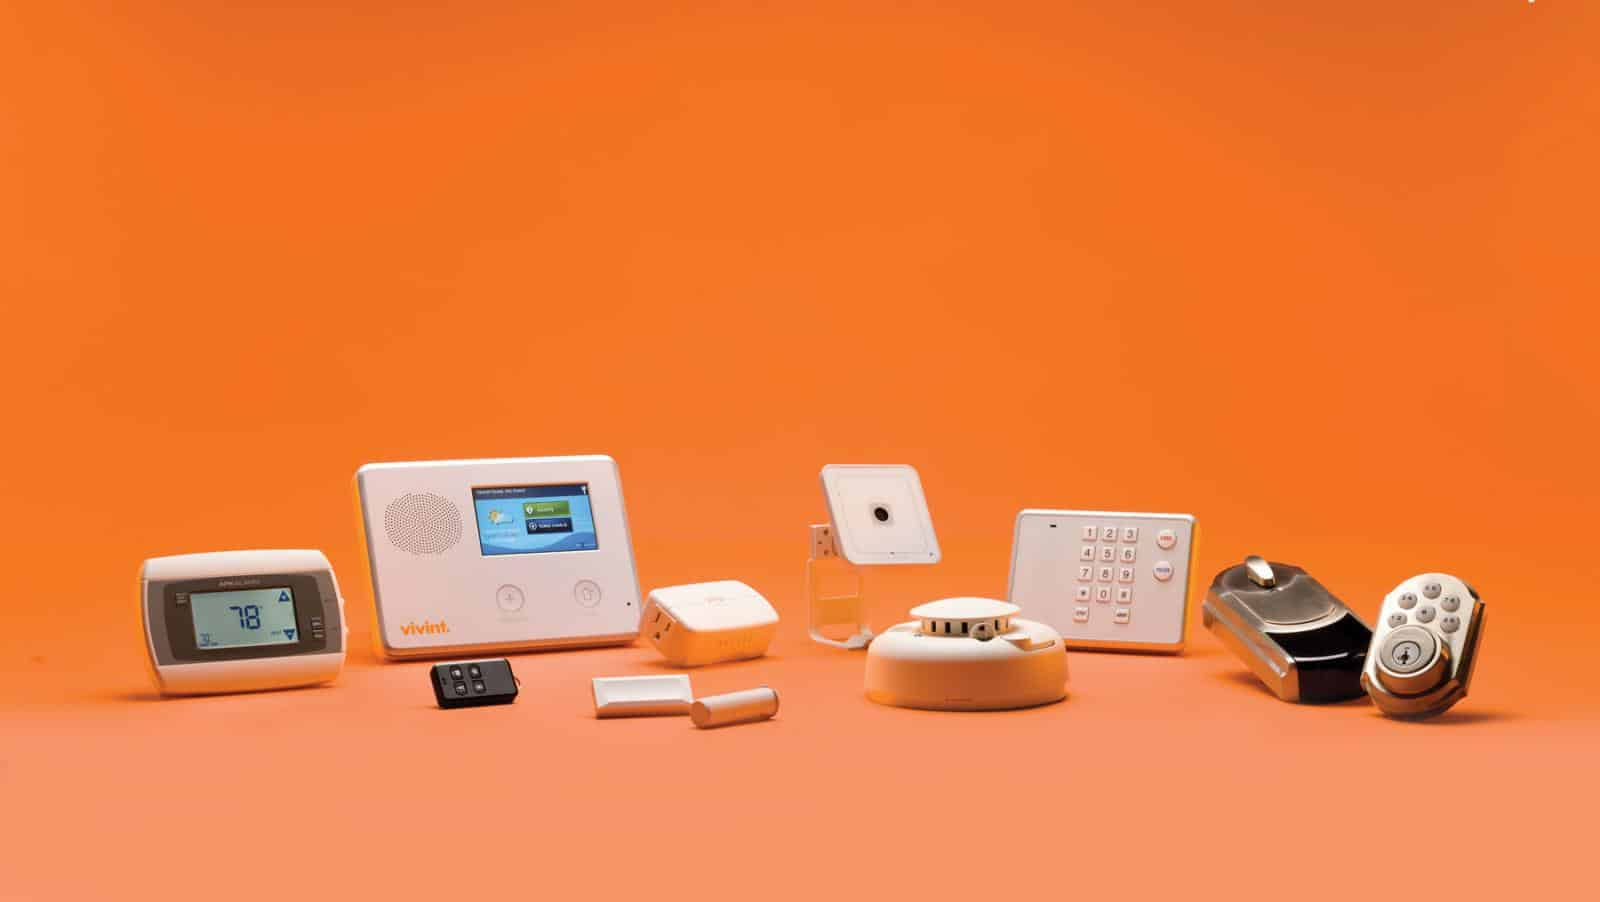 Vivint Alarm System >> Vivint Equipment Guide - Home Security List